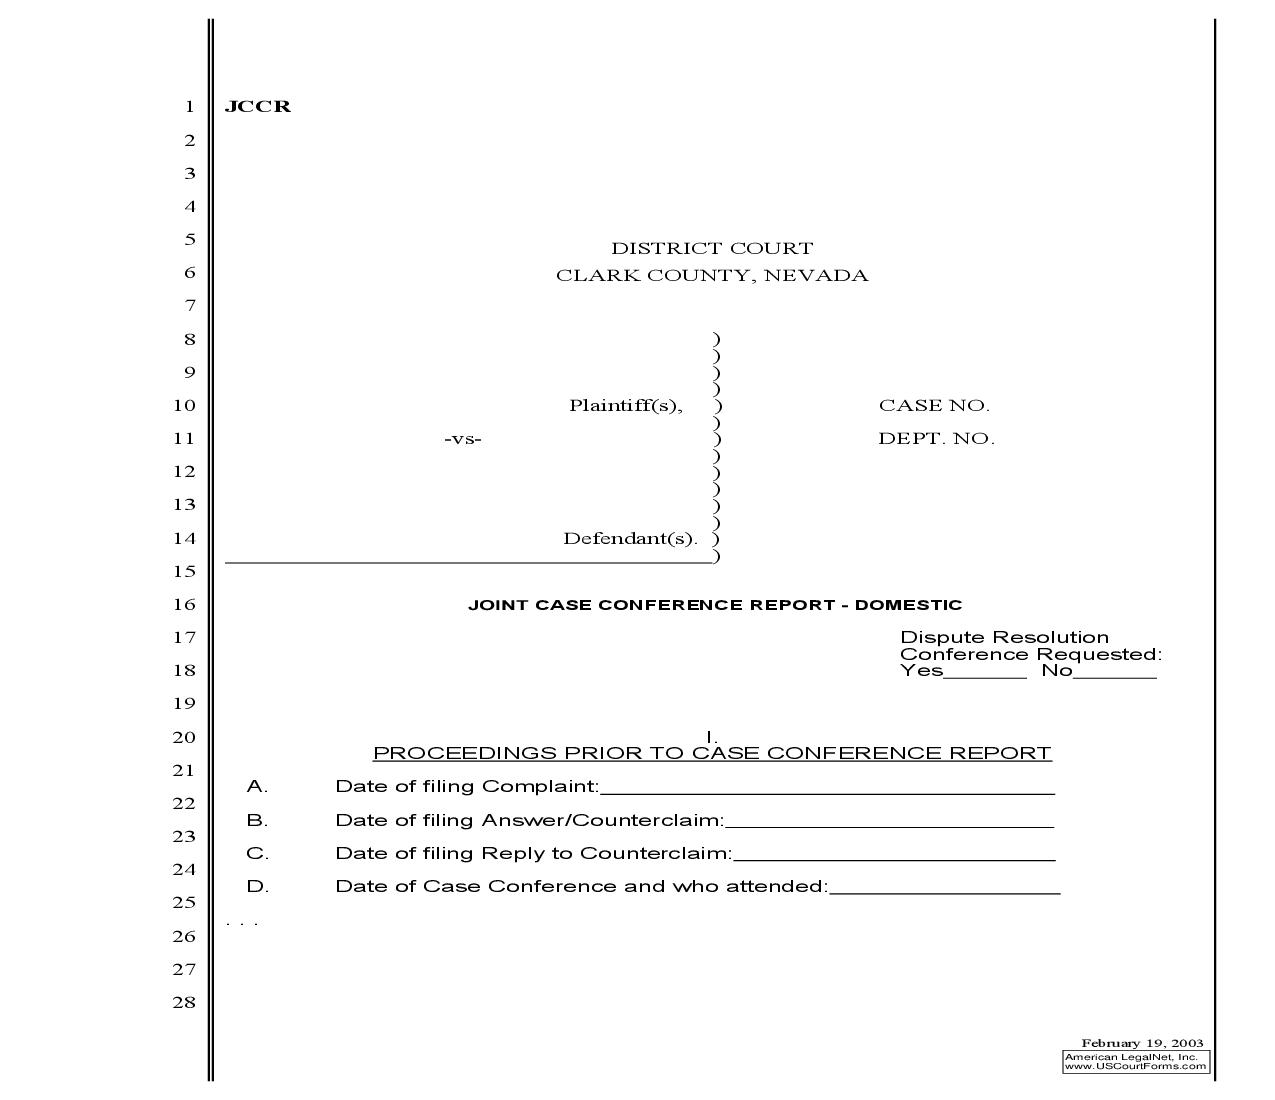 Joint Case Conference Report Domestic {JCCR} | Pdf Fpdf Doc Docx | Nevada